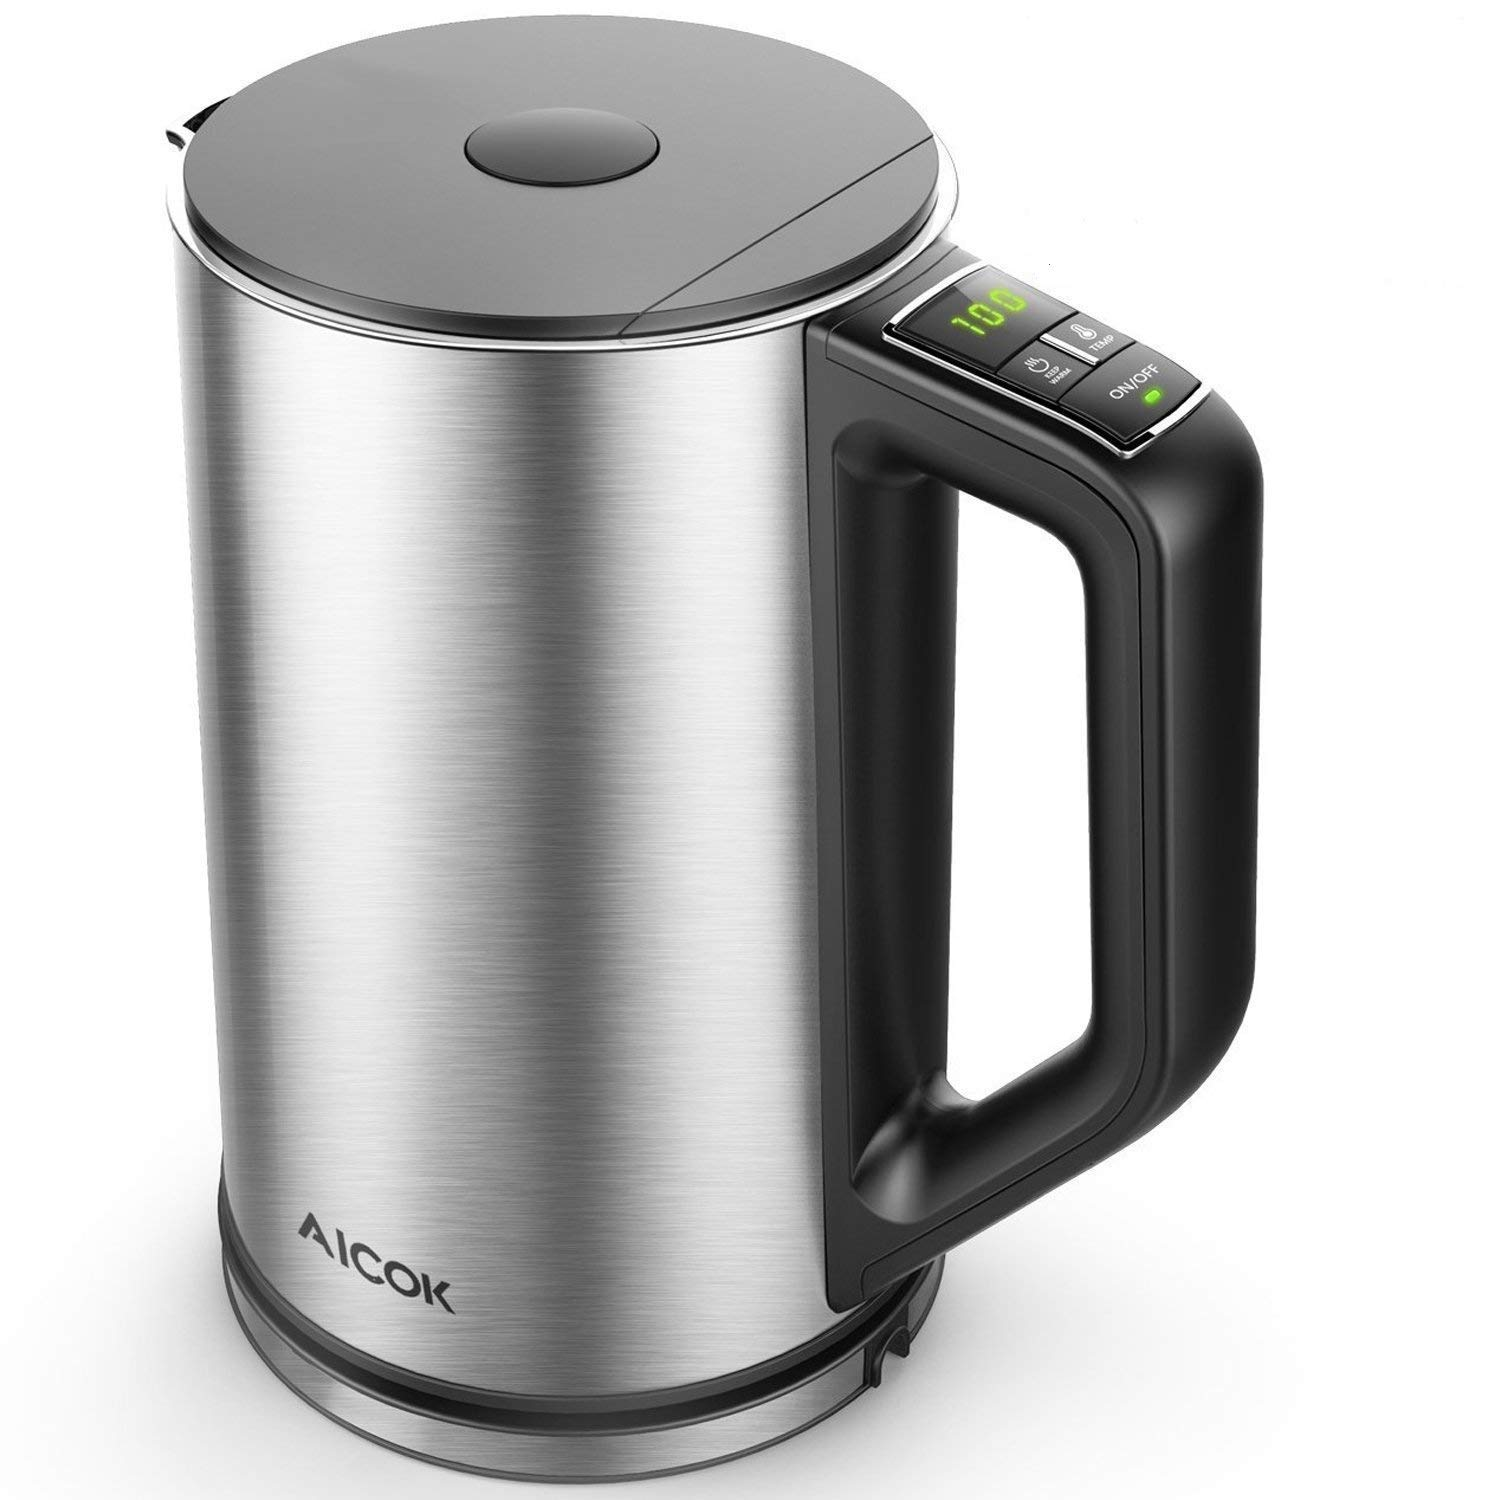 Electric Kettle, Aicok Temperature Control Kettle, Double Wall Cool Touch Water Kettle, Stainless Steel Kettle with LED Display Water Boiler from 90℉-212℉, Fast Boiling for Tea, Coffee, 1500W, 1.5L